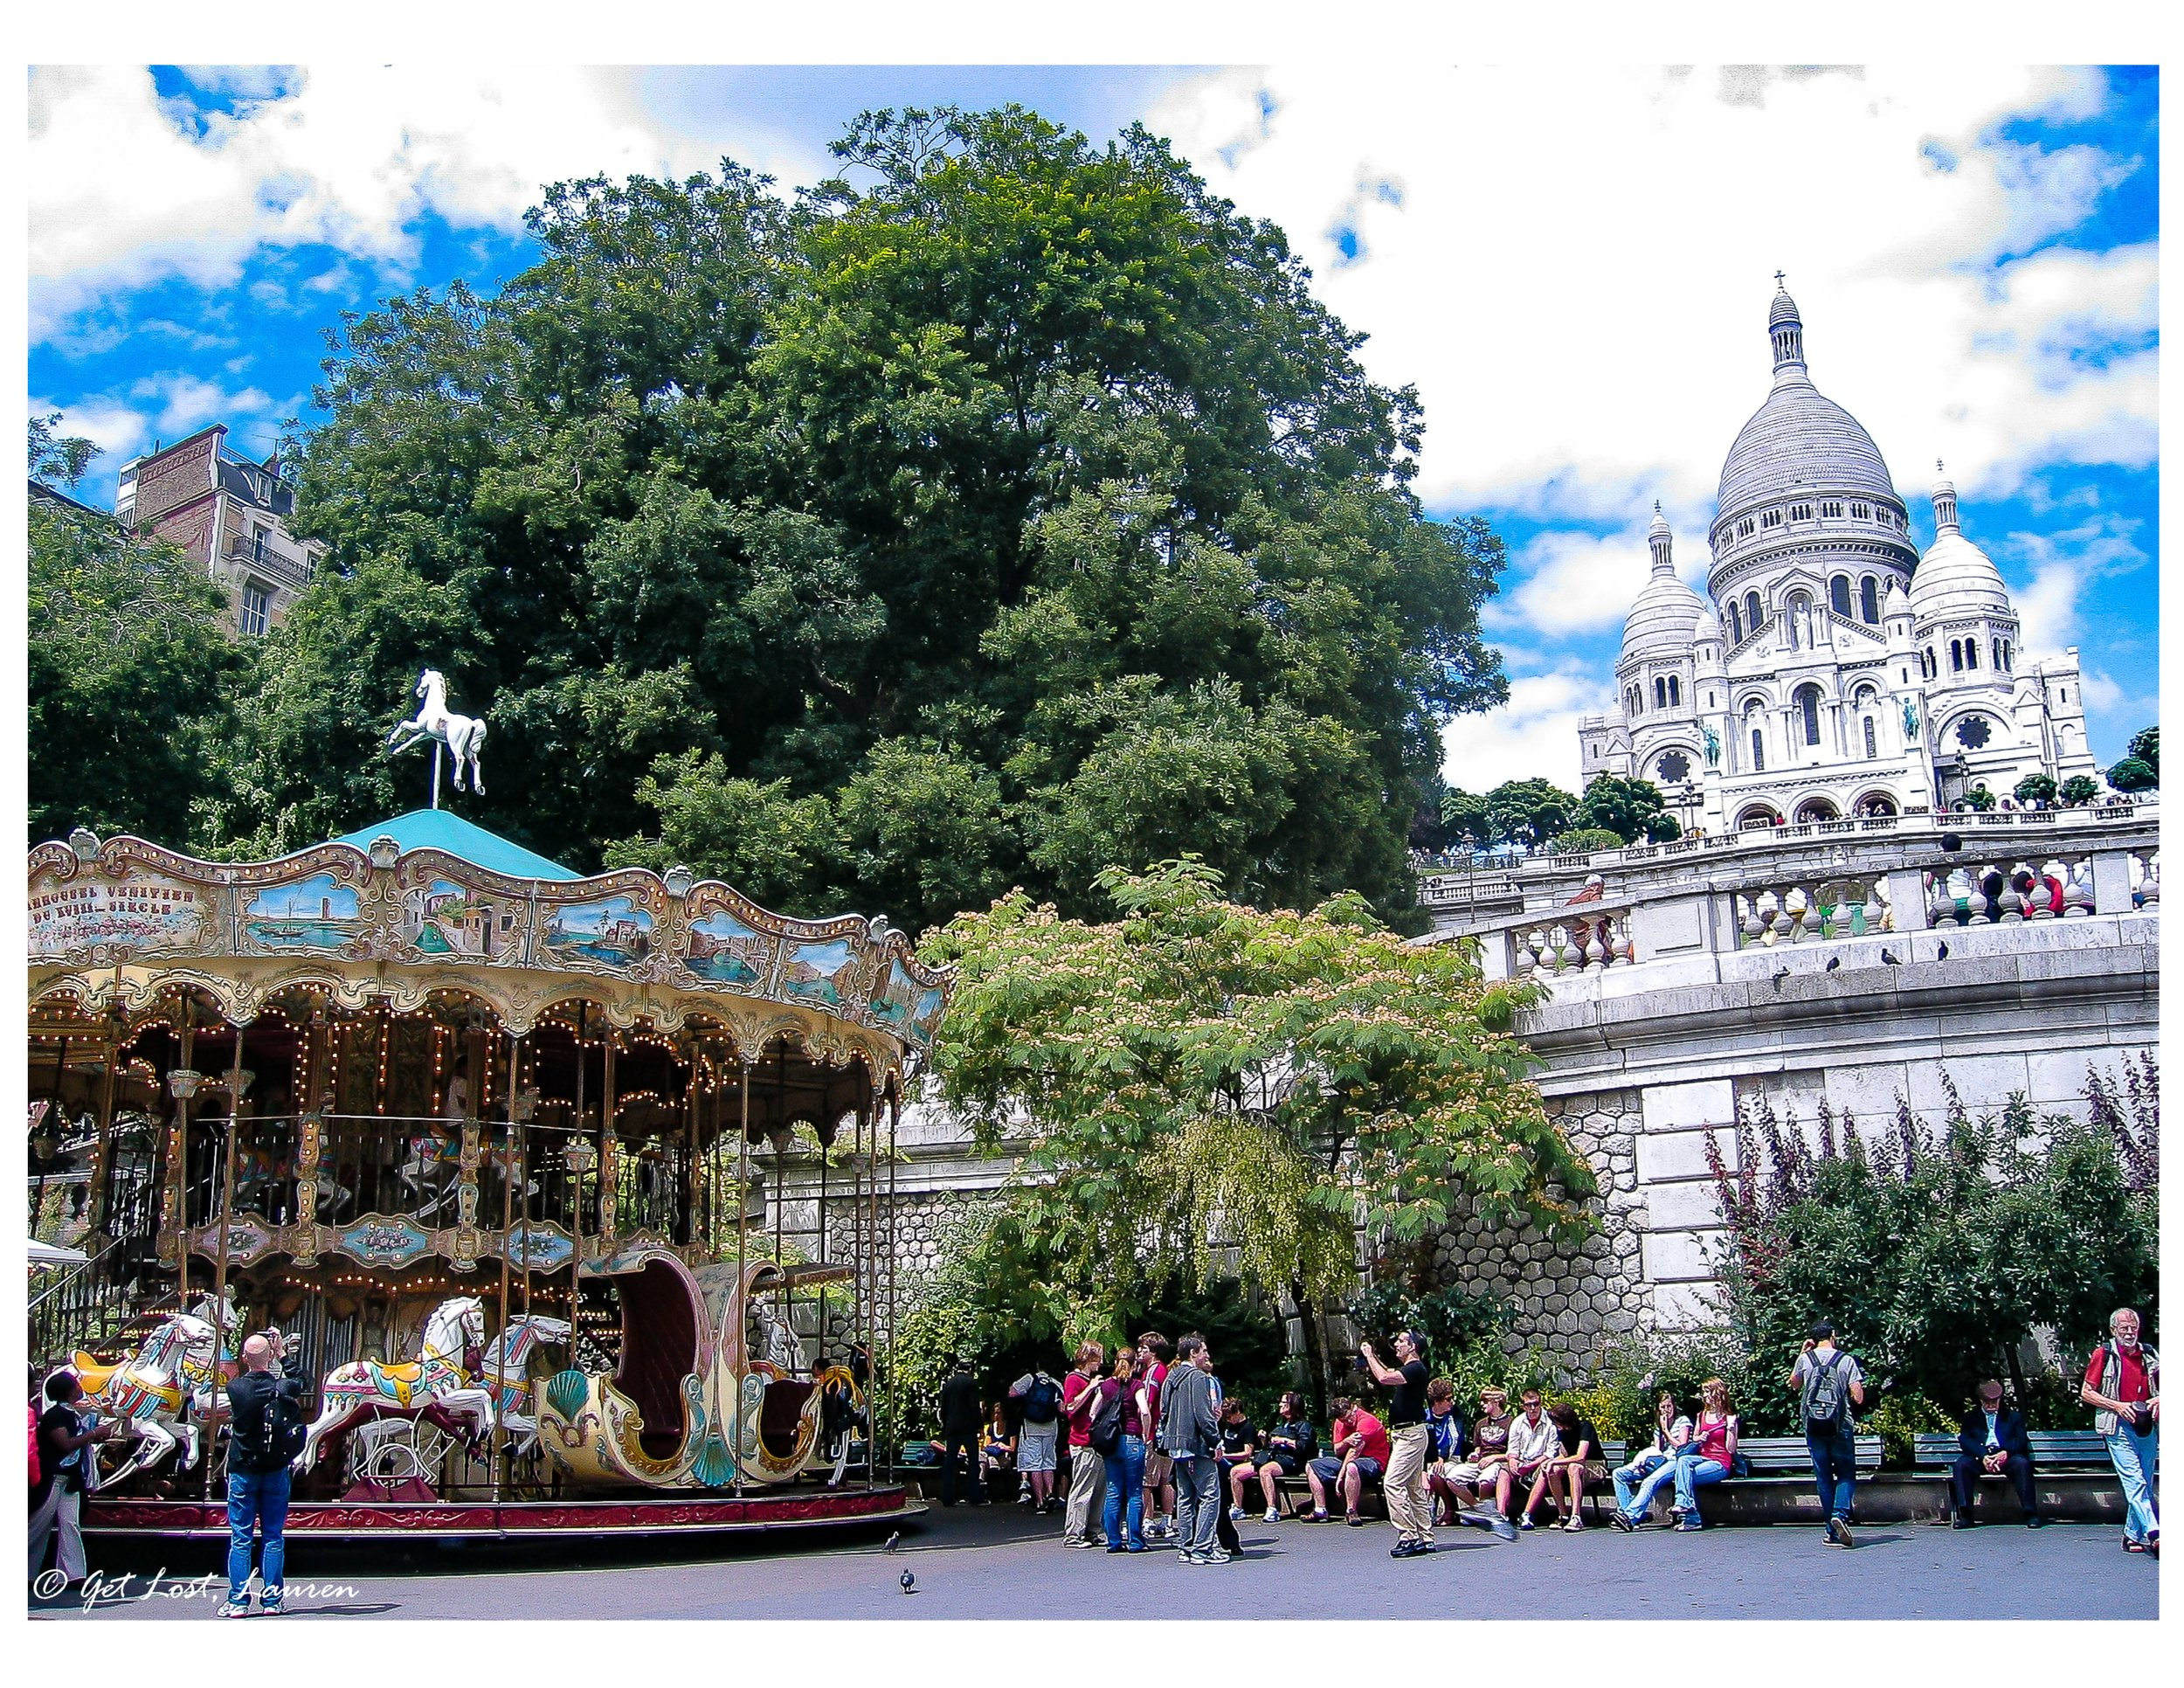 The long climb up to the Sacre Coeur begins with a merry-go-round.